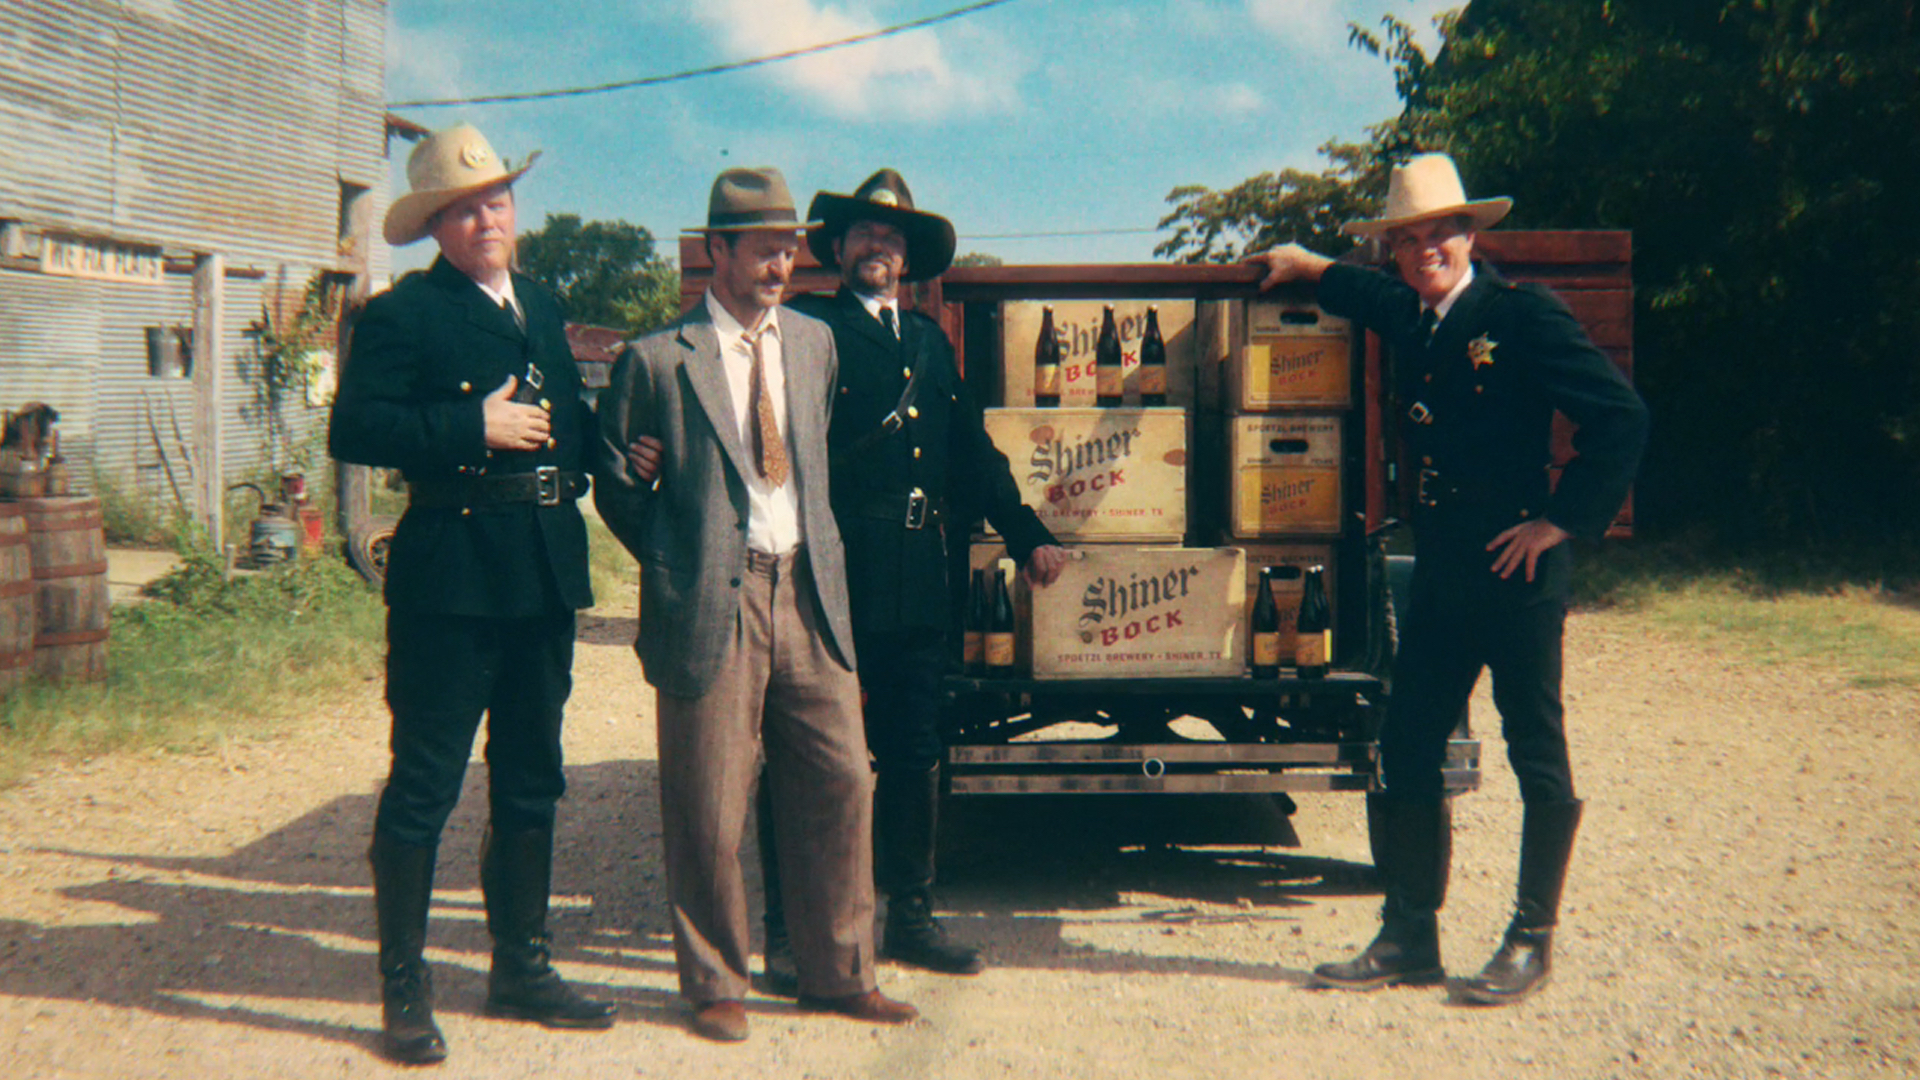 Shiner Beer – Bars & Hearse